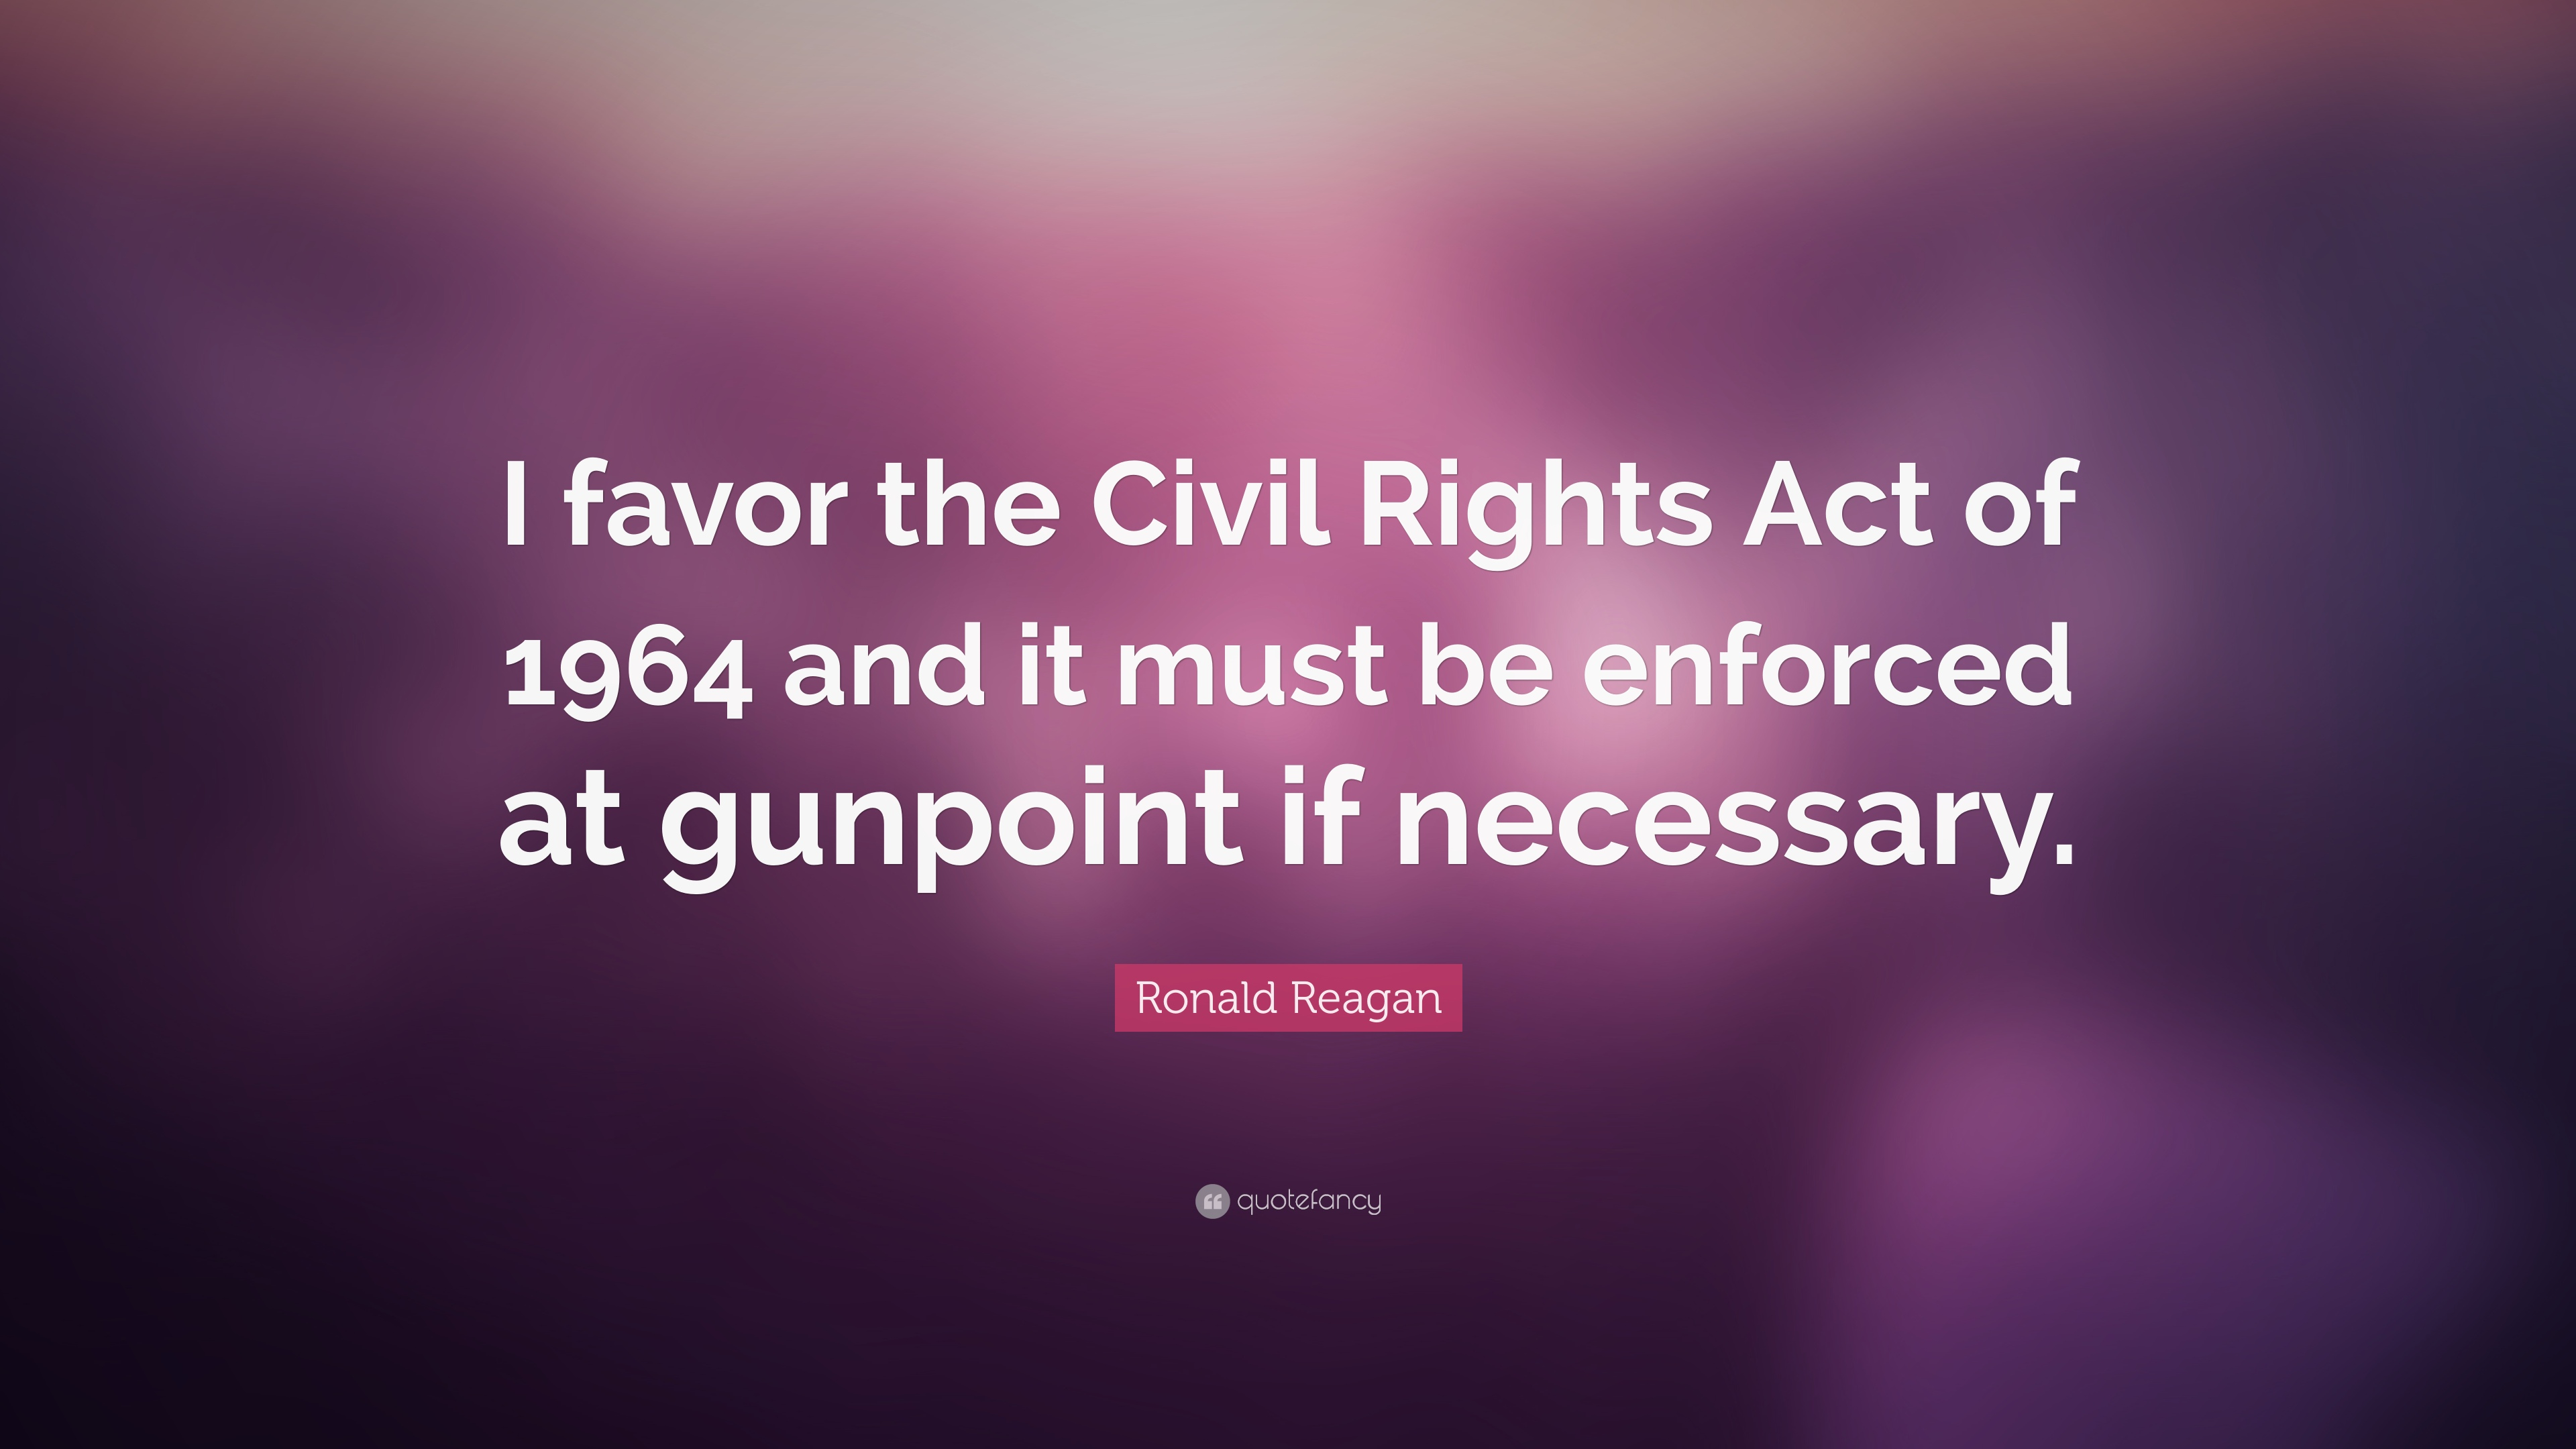 7 Wallpapers Ronald Reagan Quote I Favor The Civil Rights Act Of 1964